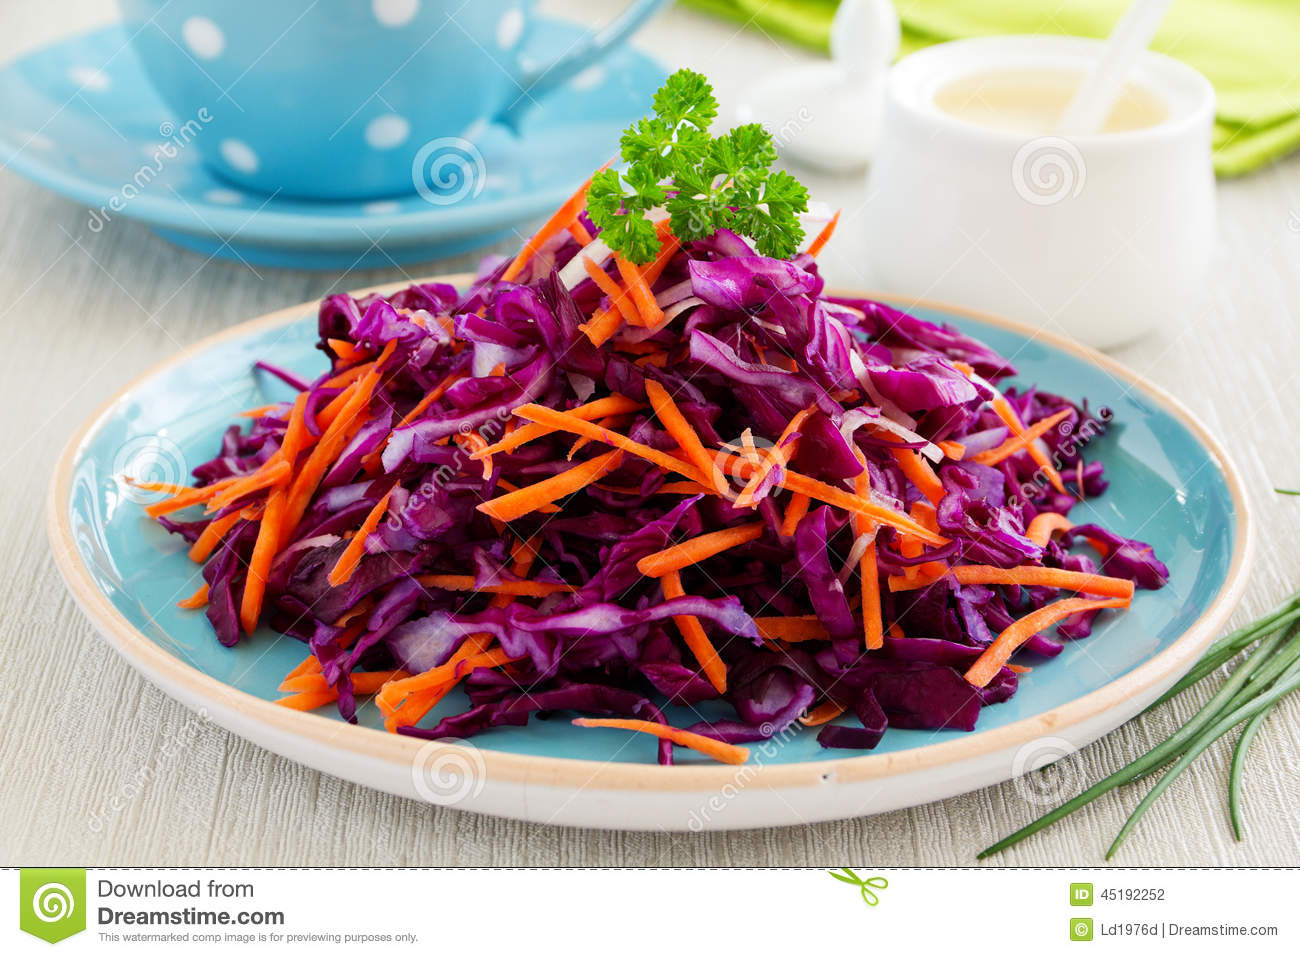 Salad Cole Slaw Stock Photography | CartoonDealer.com ...